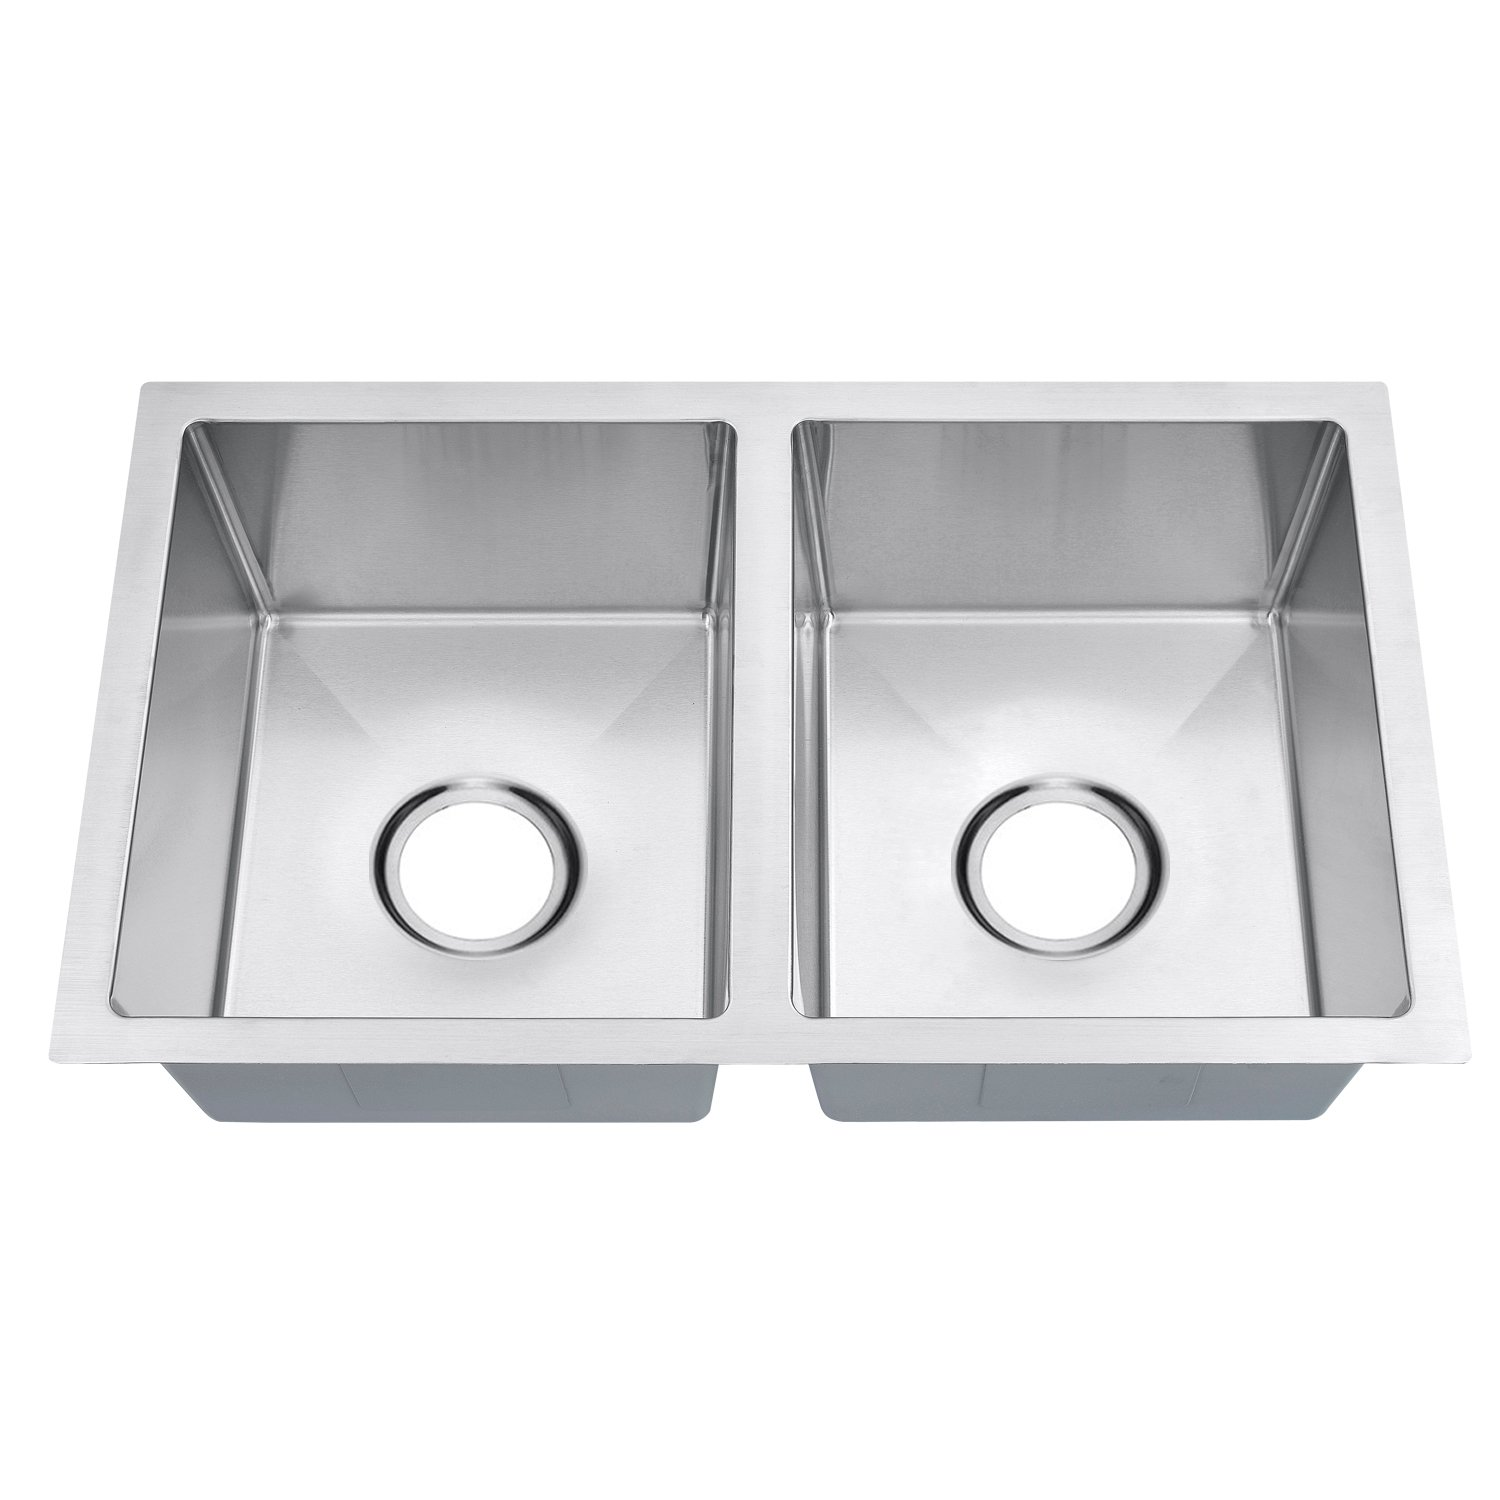 SINOGY 27 x16 Inch 50 50 Double Bowl Handmade Brushed Satin 7 Deep Kitchen Sink Undermount 18 Gauge Stainless Steel For RV Without Accessory